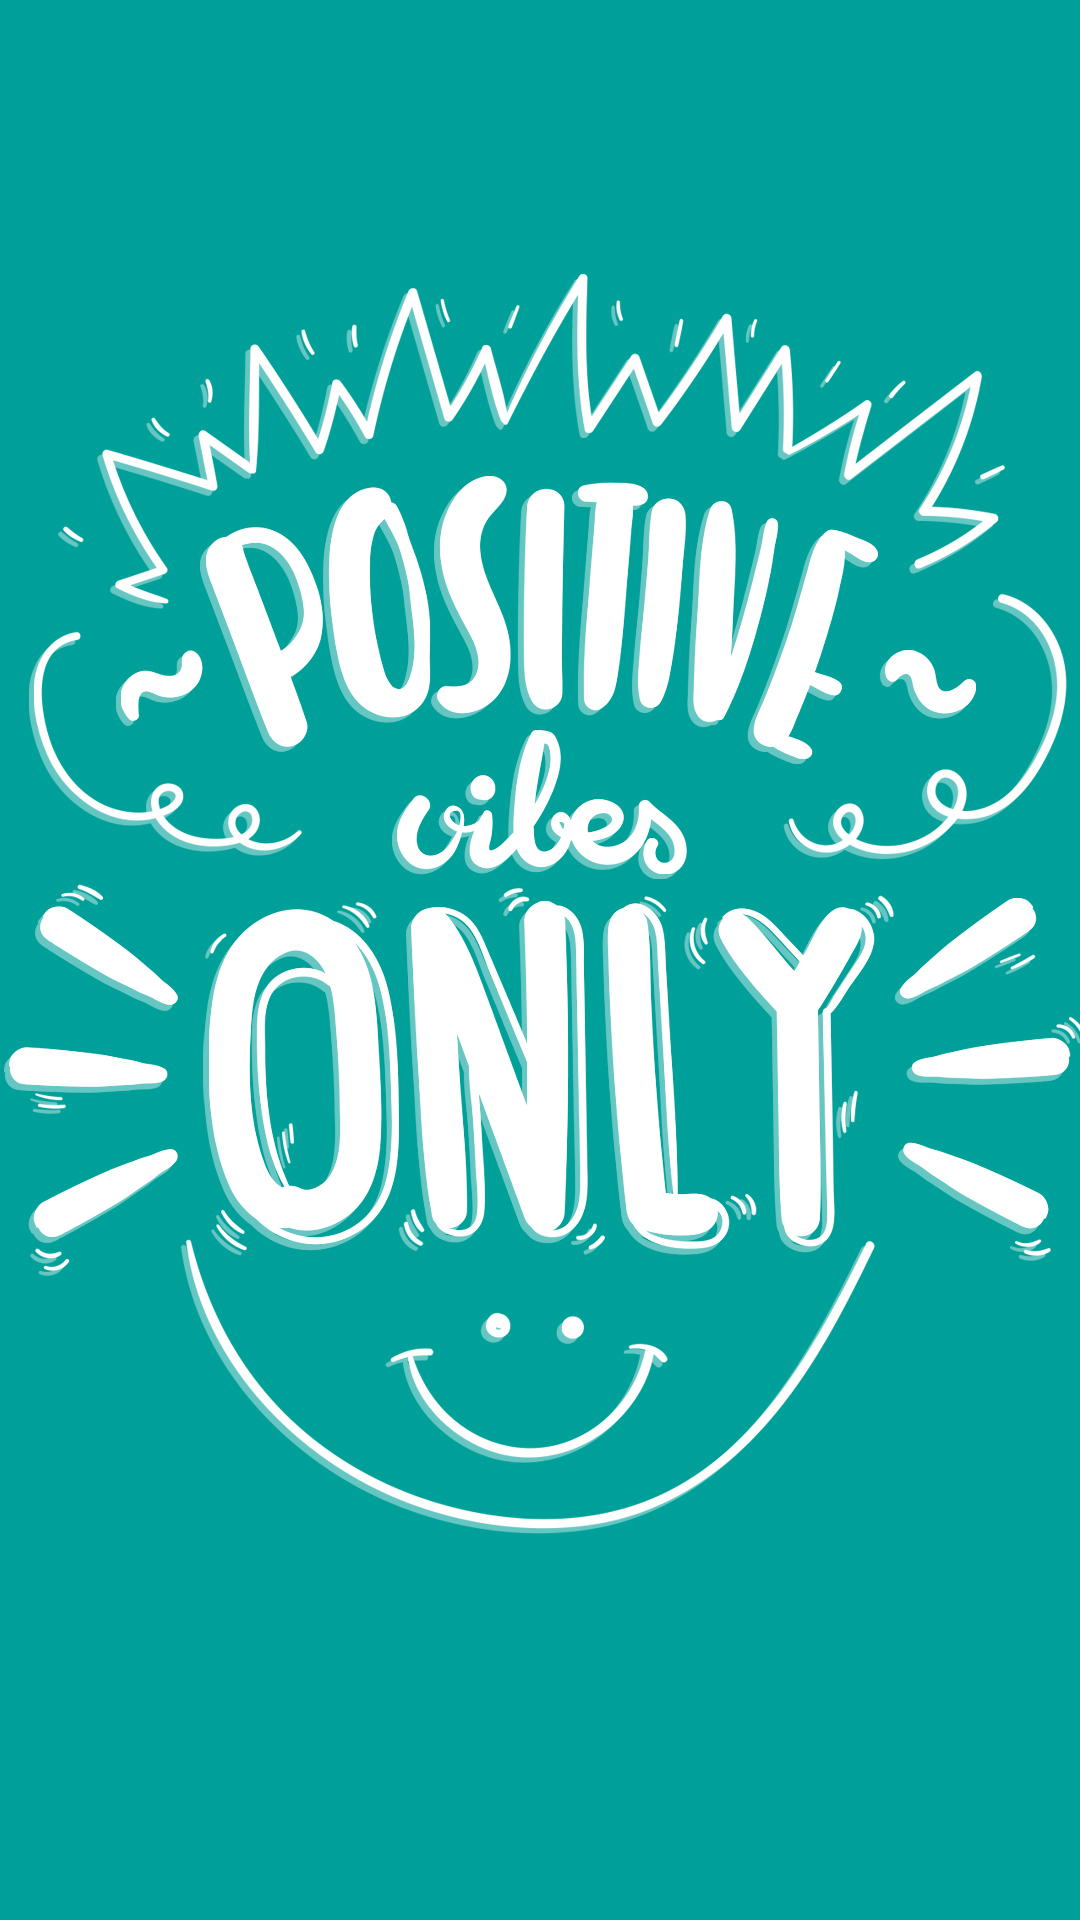 Download think positive saying quote wallpapers for your mobile.